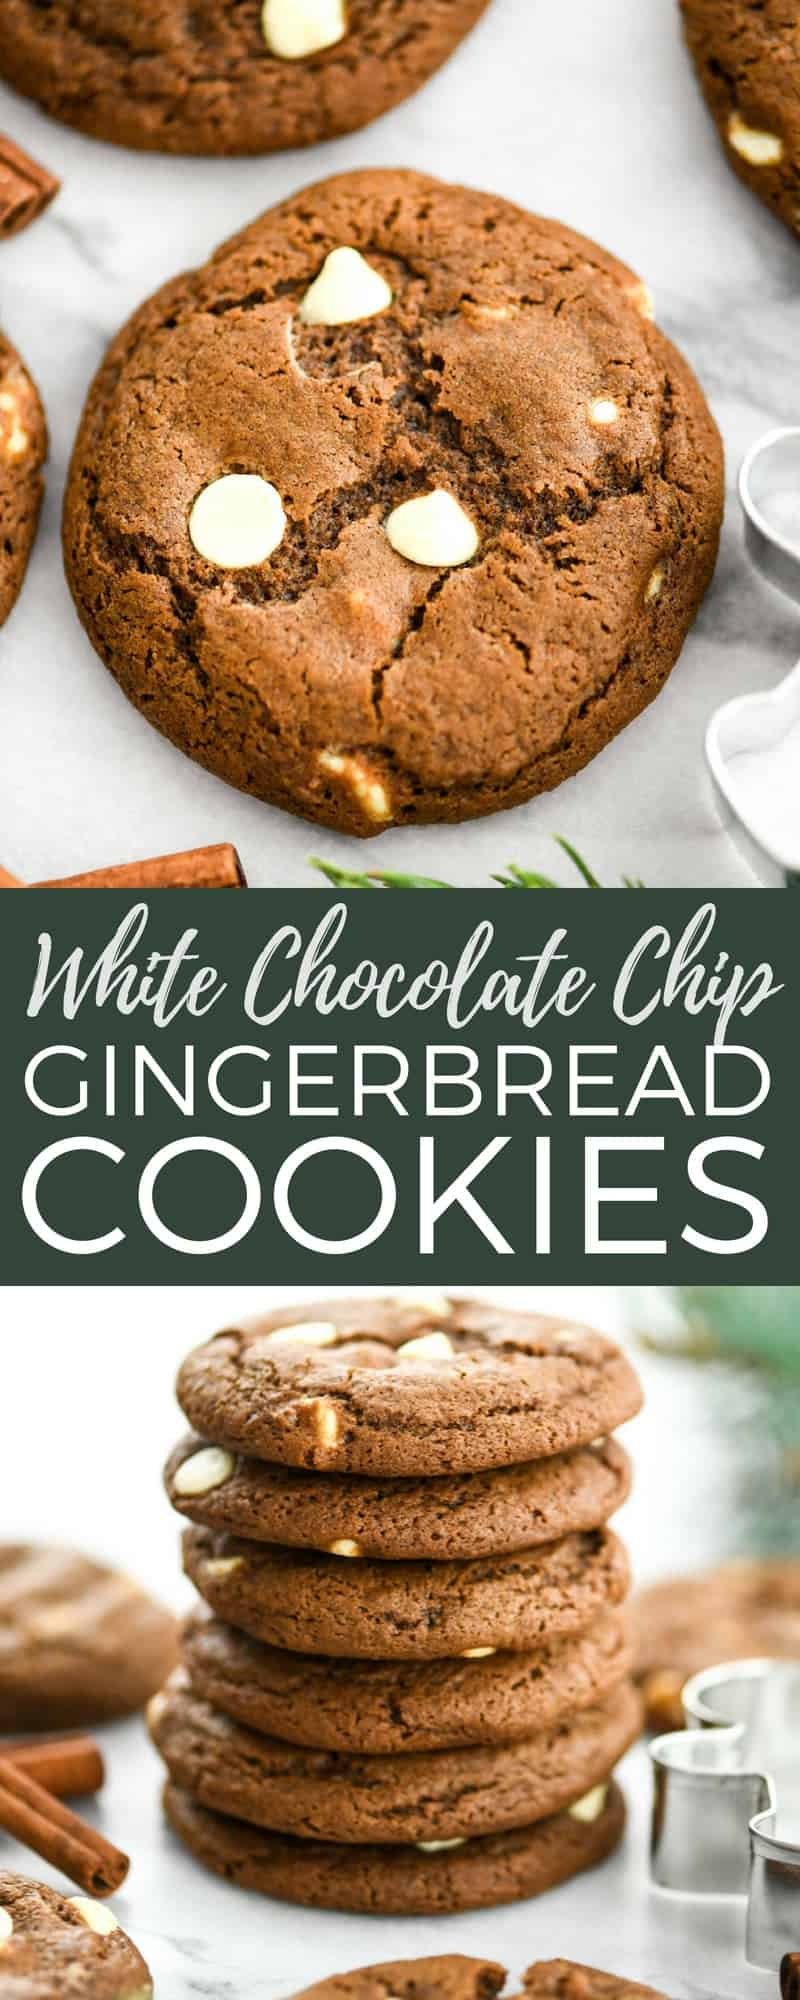 These White Chocolate Chip Gingerbread Cookies make the perfect holiday dessert. This classic recipe is so easy to make and  encompasses all the best flavors of Christmas! #gingerbread #cookies #whitechocolate #christmas #holidays #baking #recipe